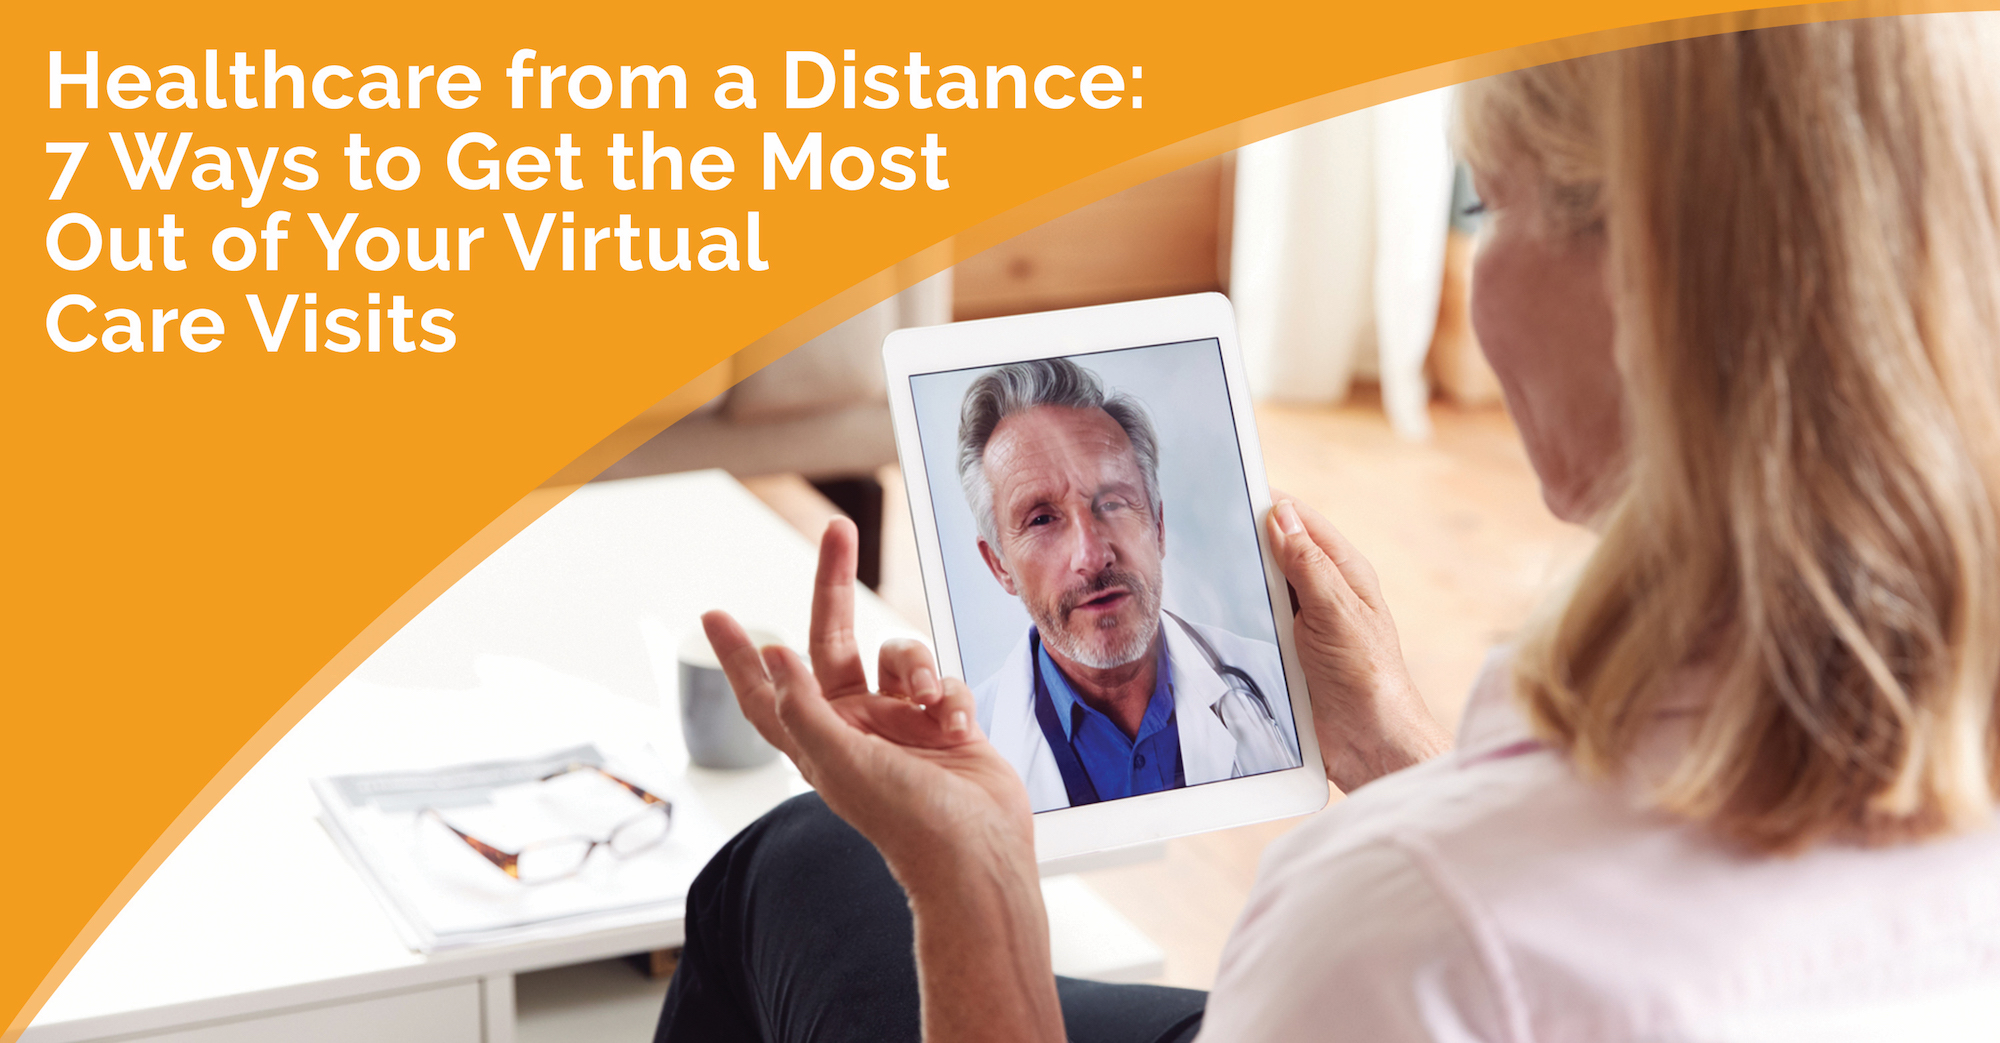 Healthcare from a Distance: 7 Ways to Get the Most Out of Your Virtual Care Visits